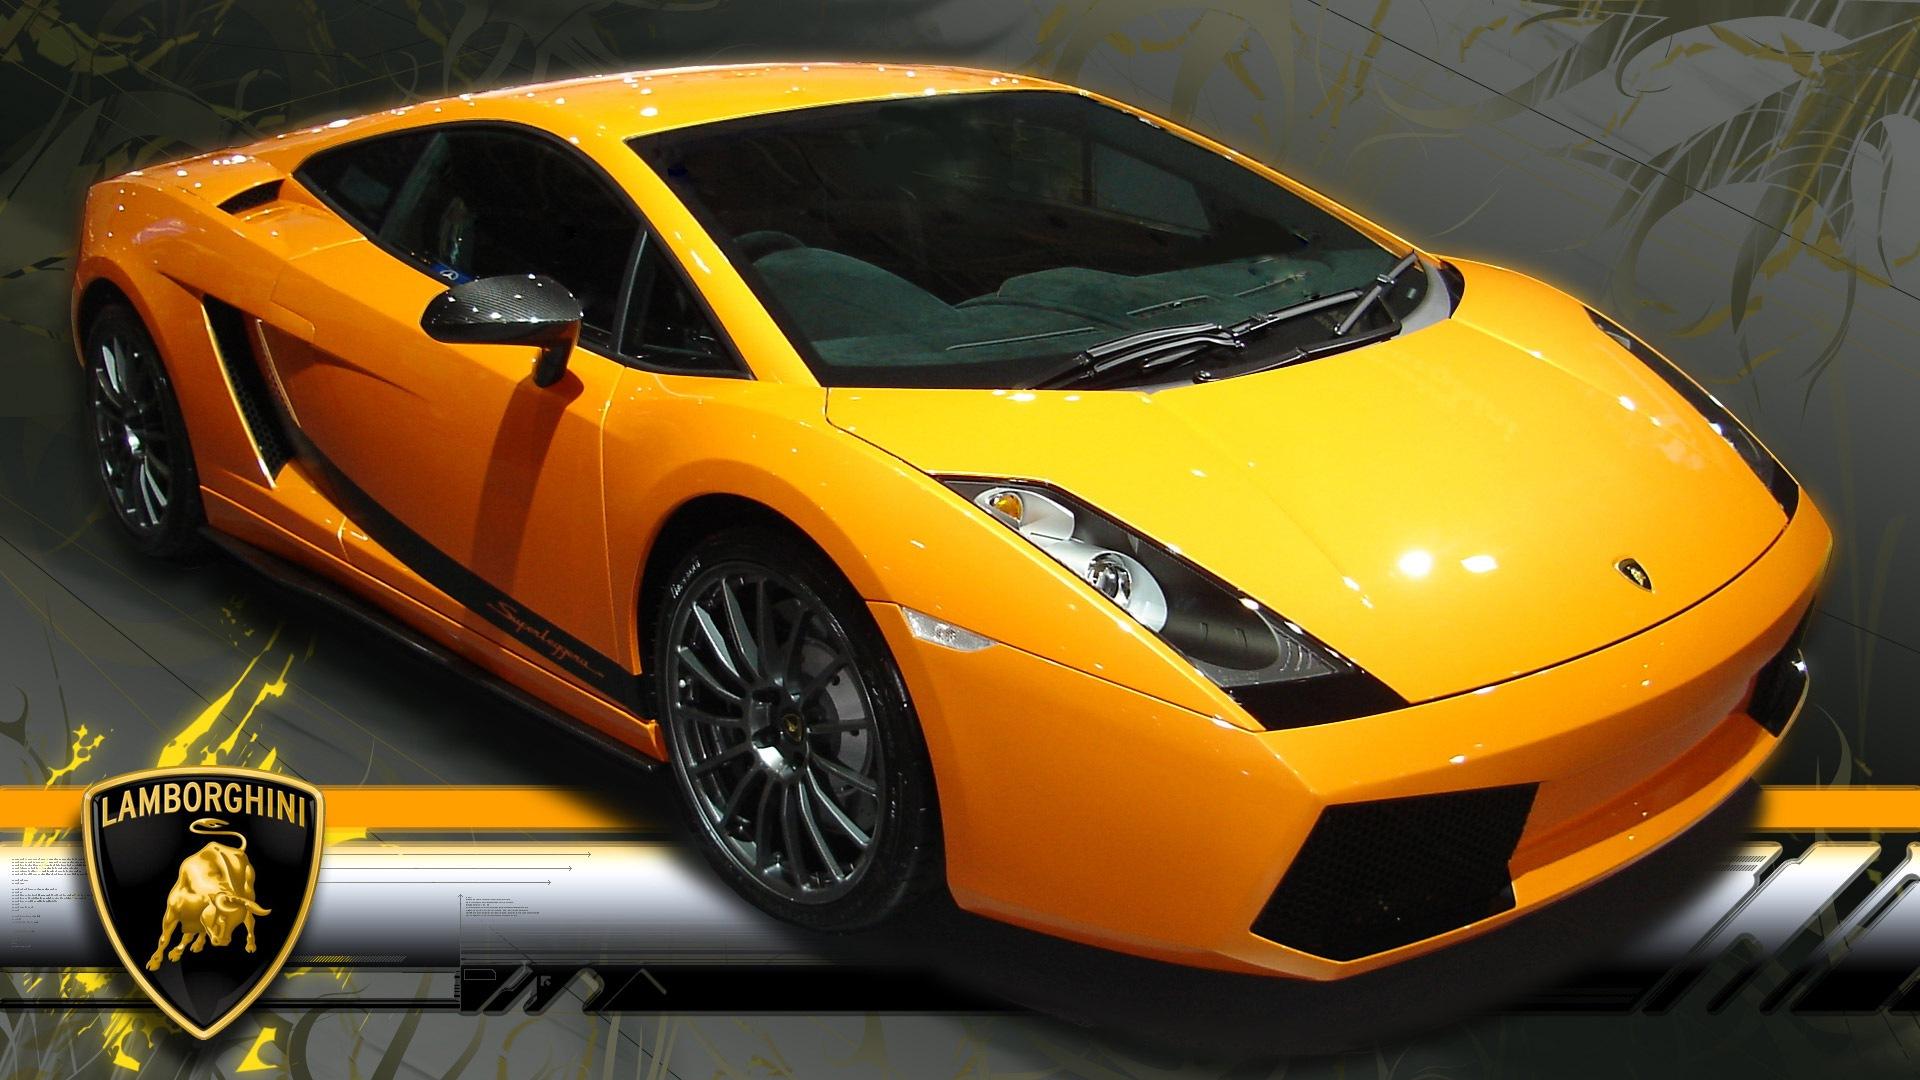 Lamborghini Car Images Pics&Wallpapers